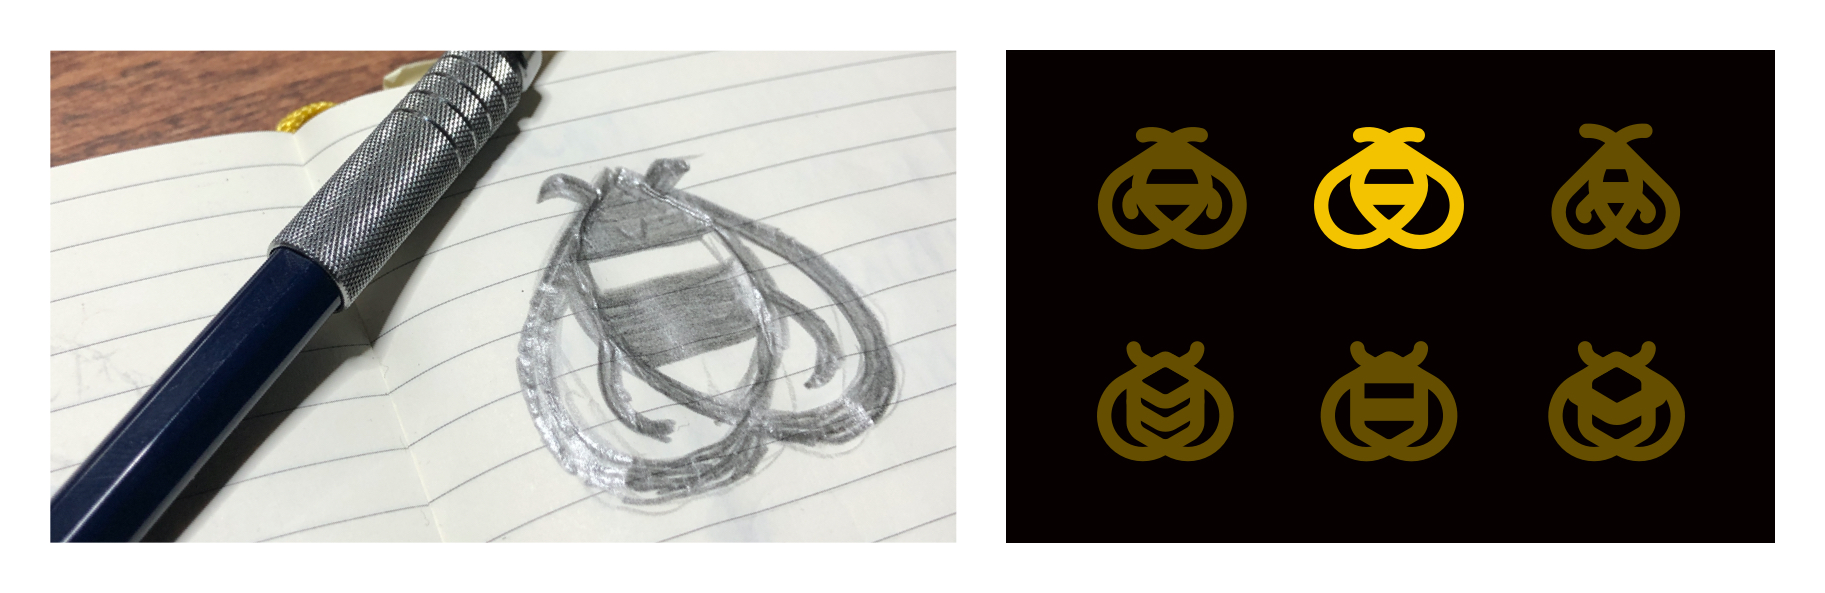 Zarbee's logo from drawing to execution